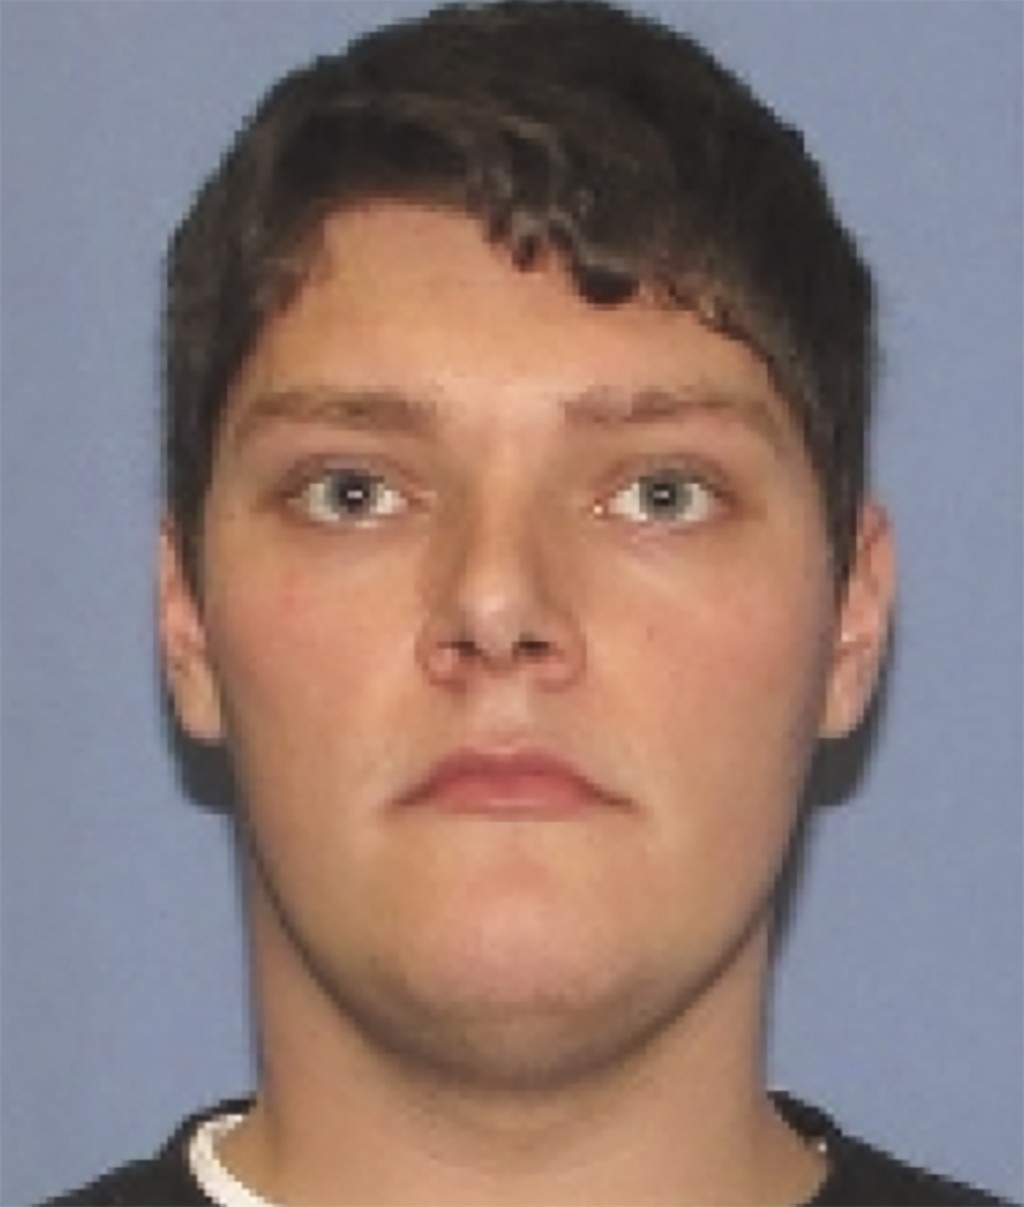 This undated photo provided by the Dayton Police Department shows Connor Betts. The 24-year-old masked gunman in body armor opened fire early Sunday,